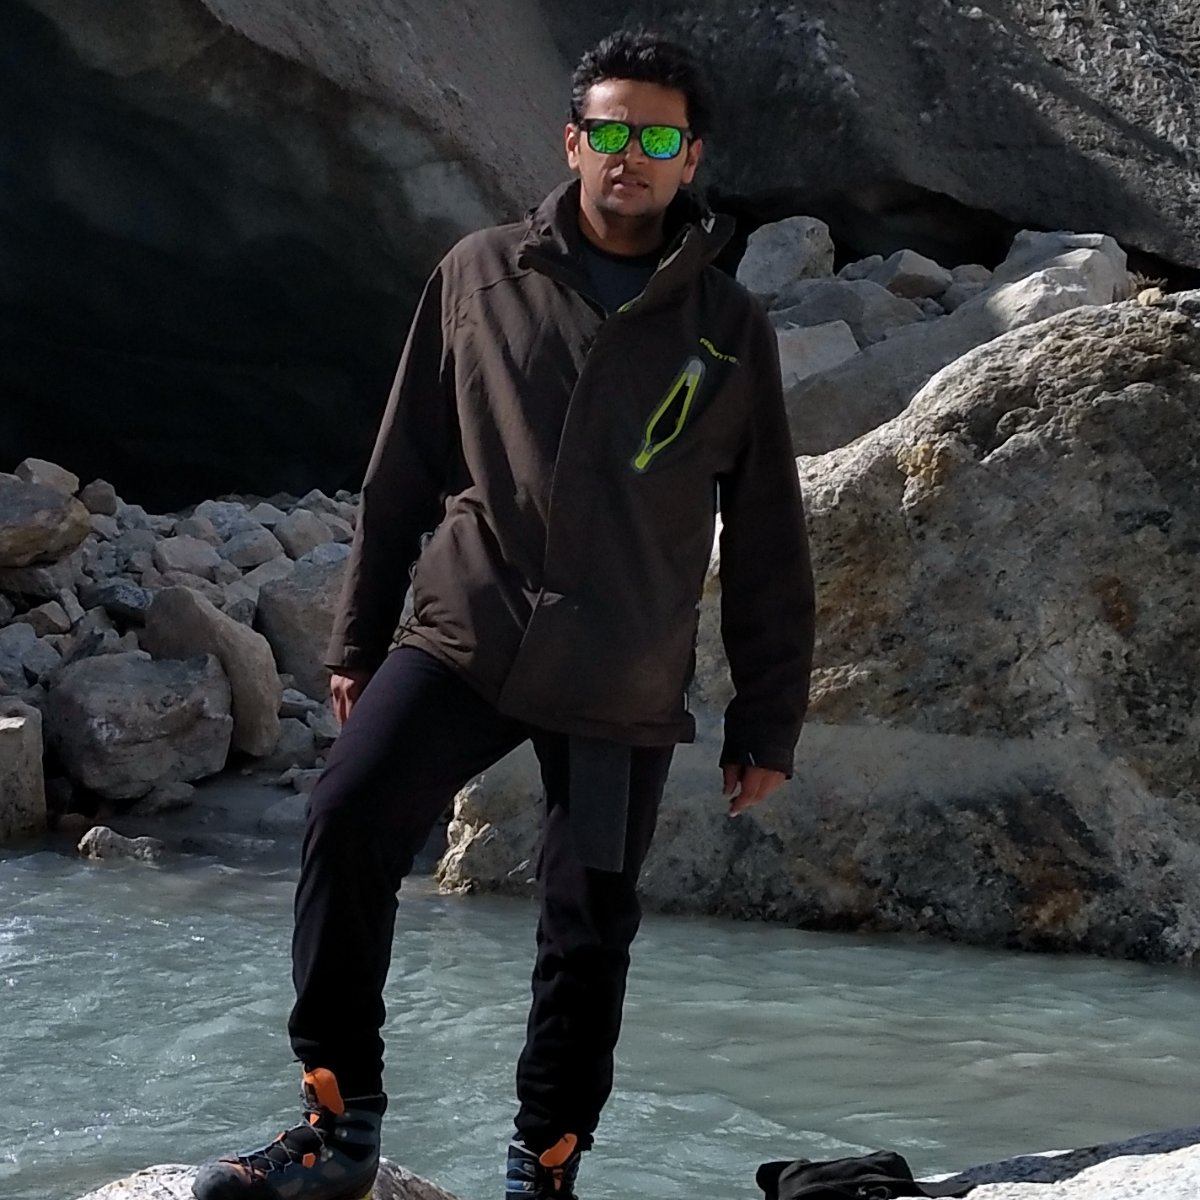 Saurabh in hiking clothes standing in front of rocks and a river